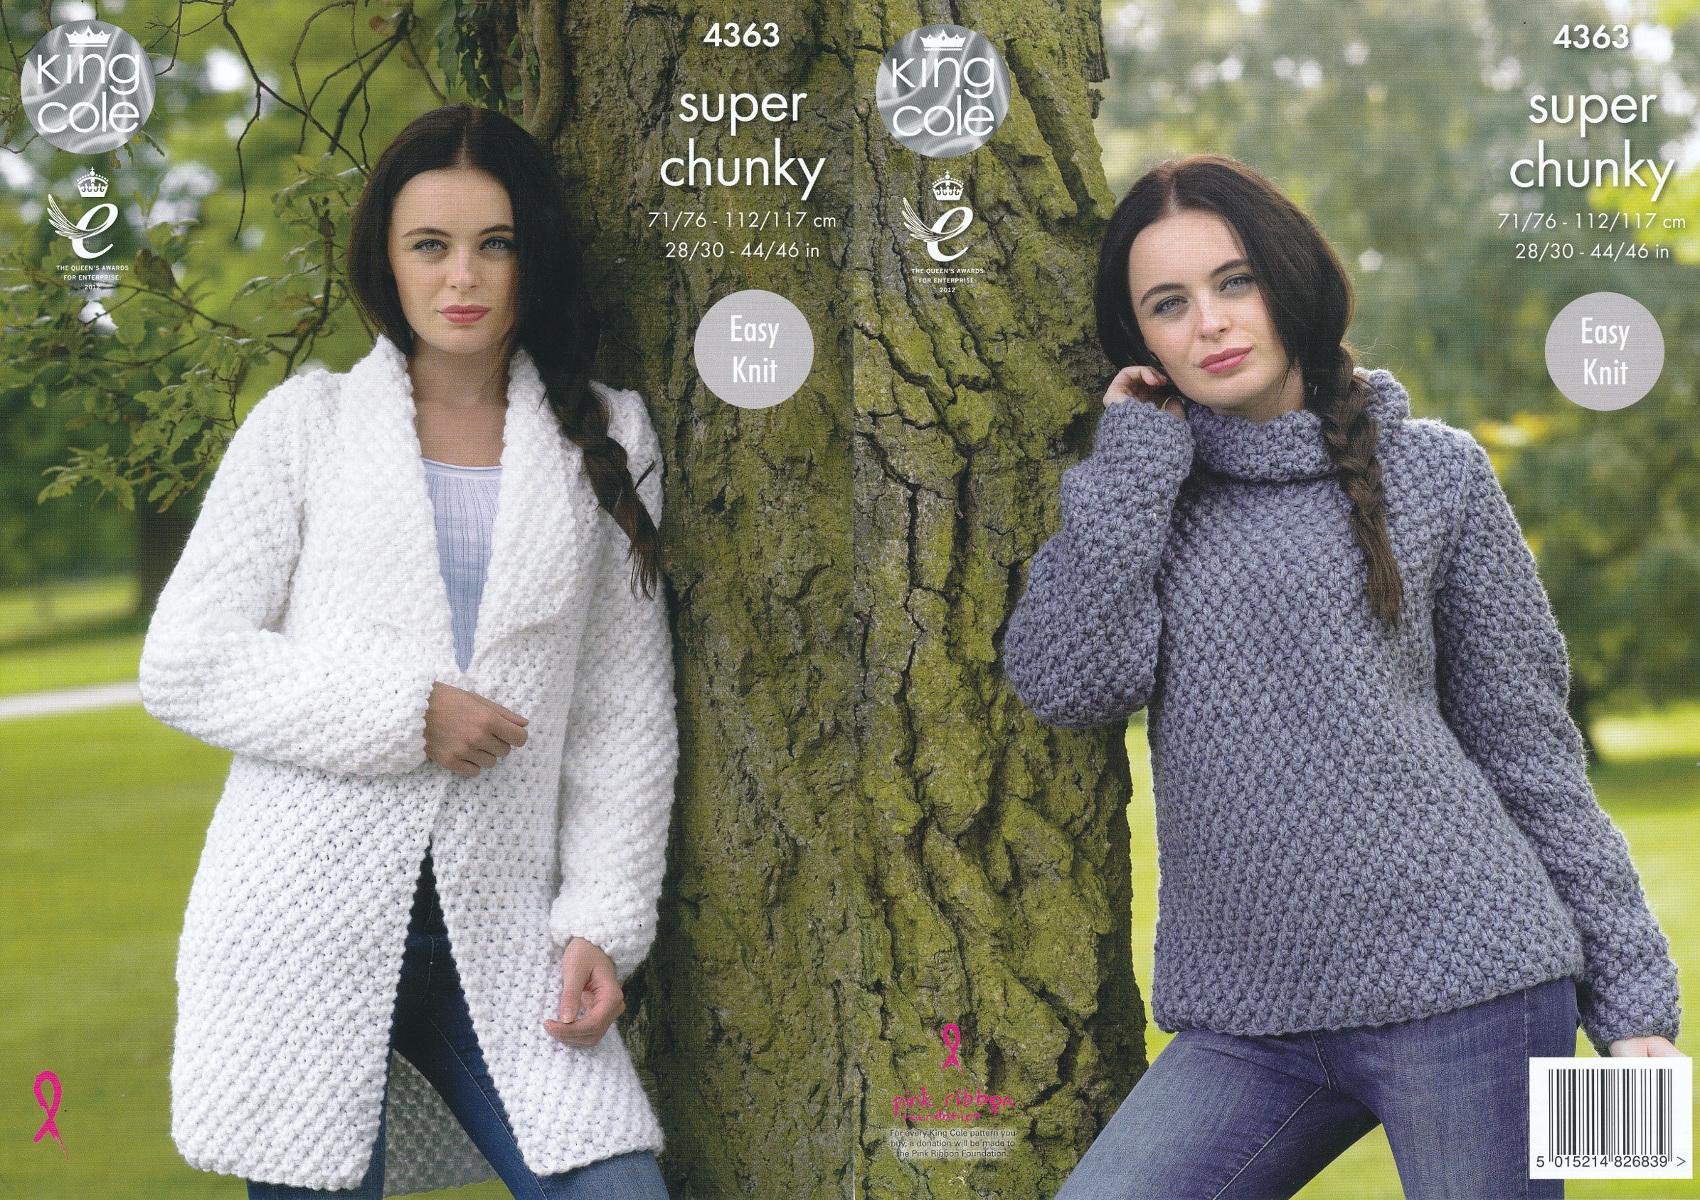 a67c6b851 Ladies Super Chunky Knitting Pattern King Cole Easy Knit Sweater   Jacket  4363